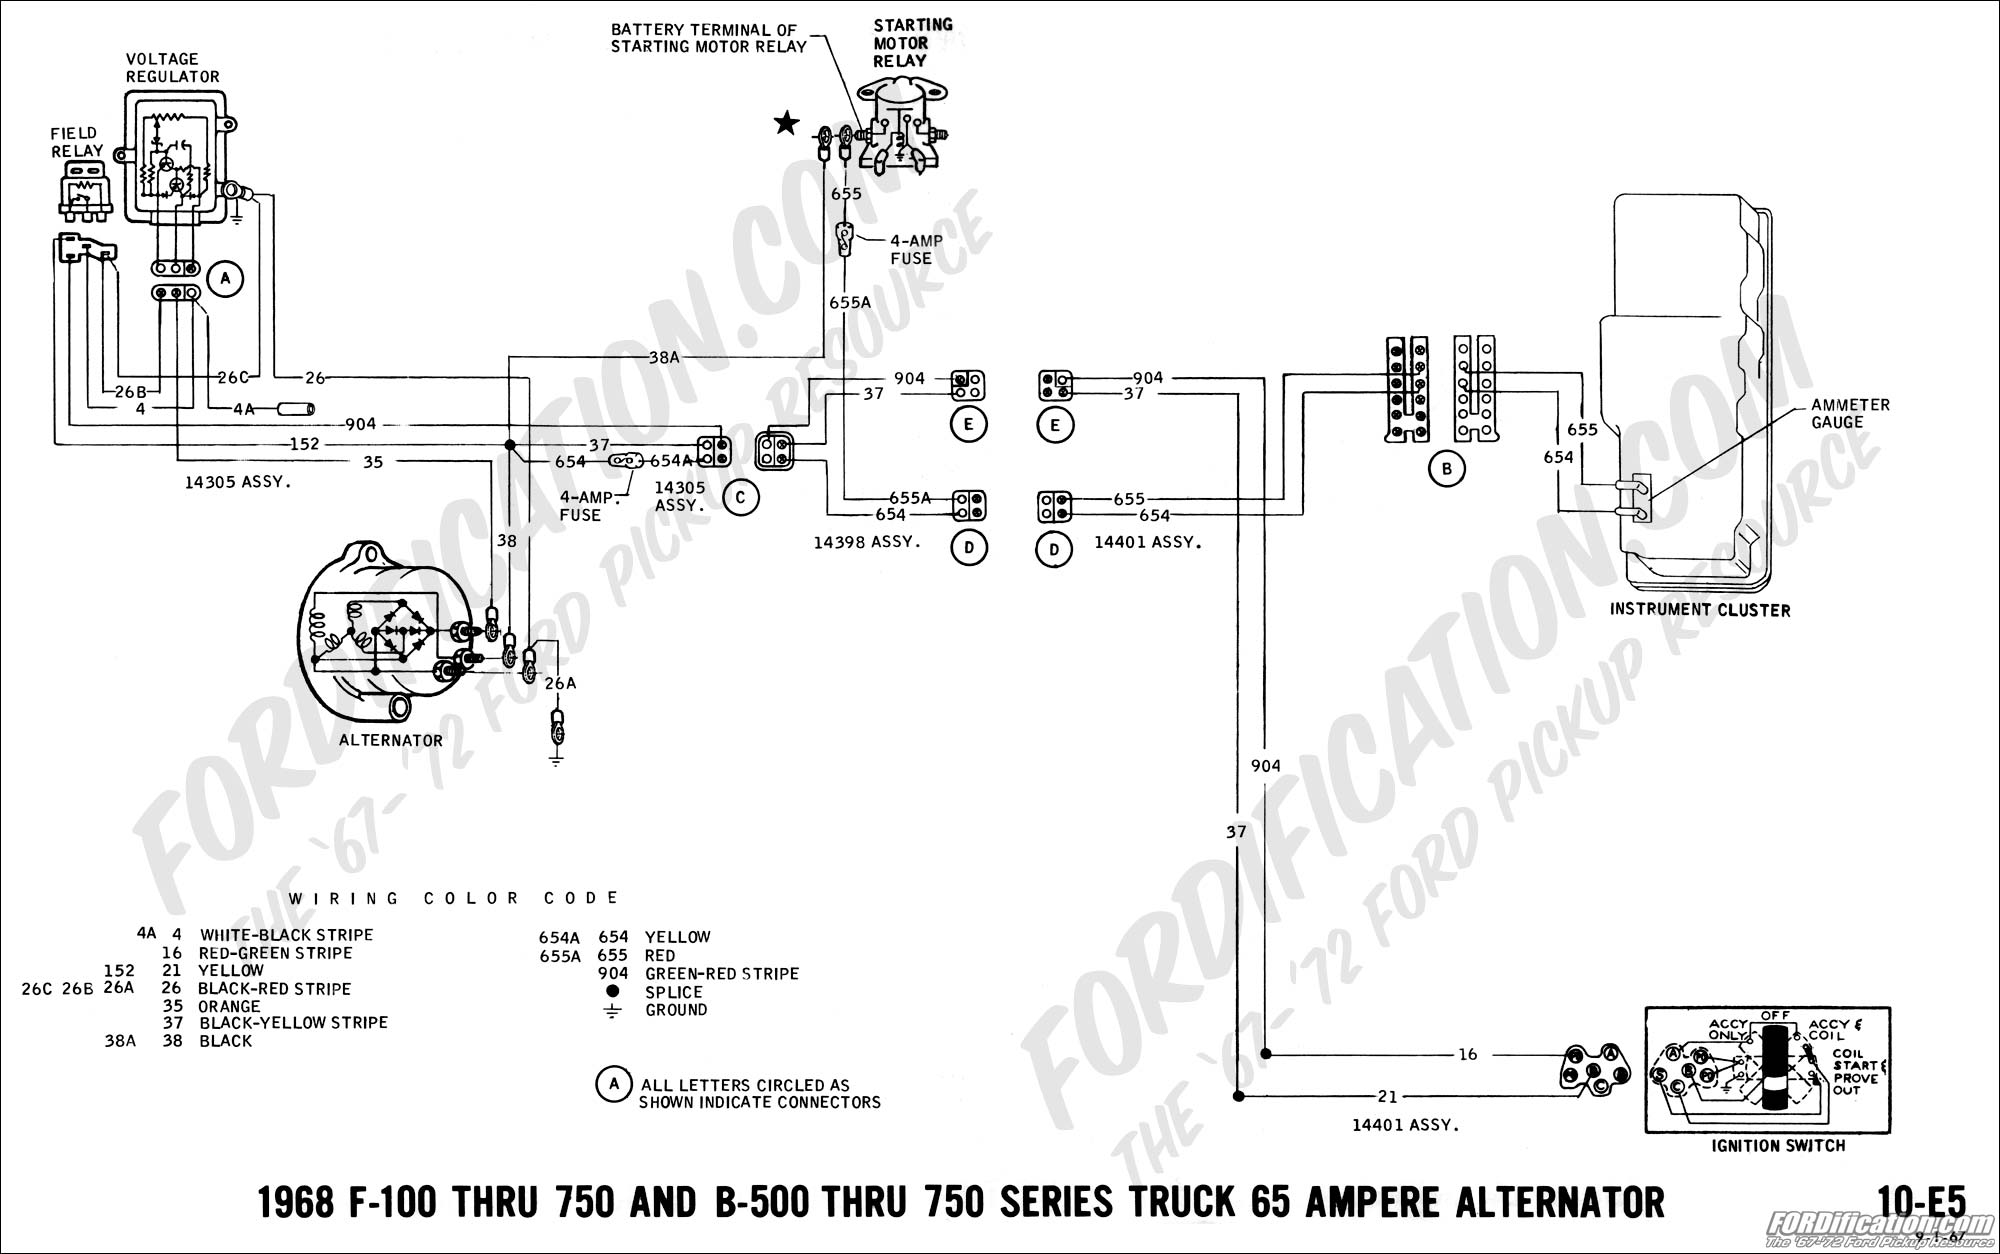 68 07 ford truck technical drawings and schematics section h wiring Ford 3 Wire Alternator Diagram at eliteediting.co